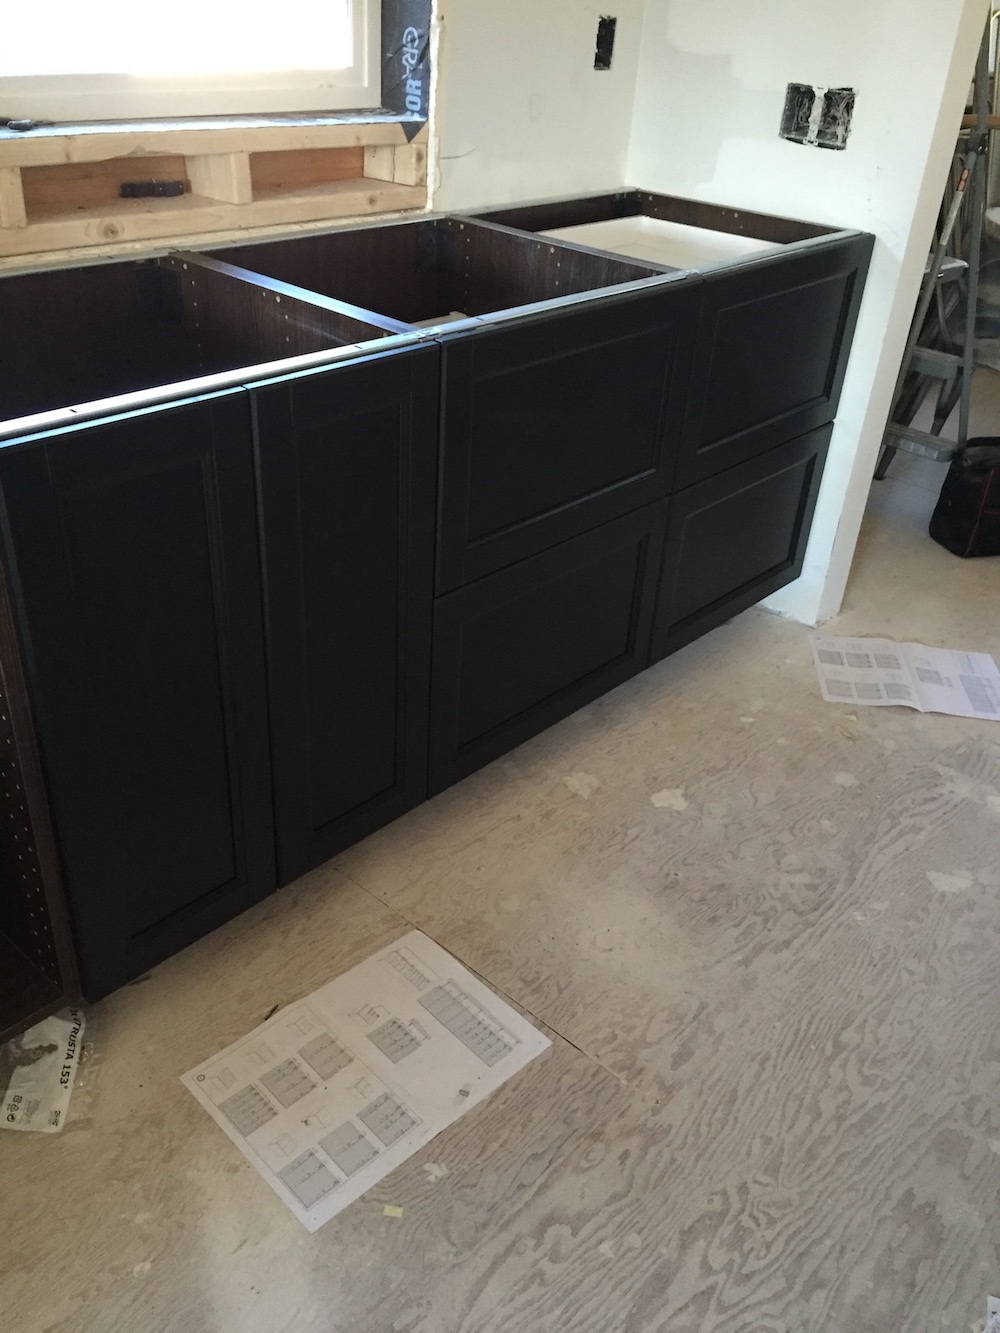 Ikea Laxarby Black/Brown Cabinet. I love them! They are solid wood fronts.